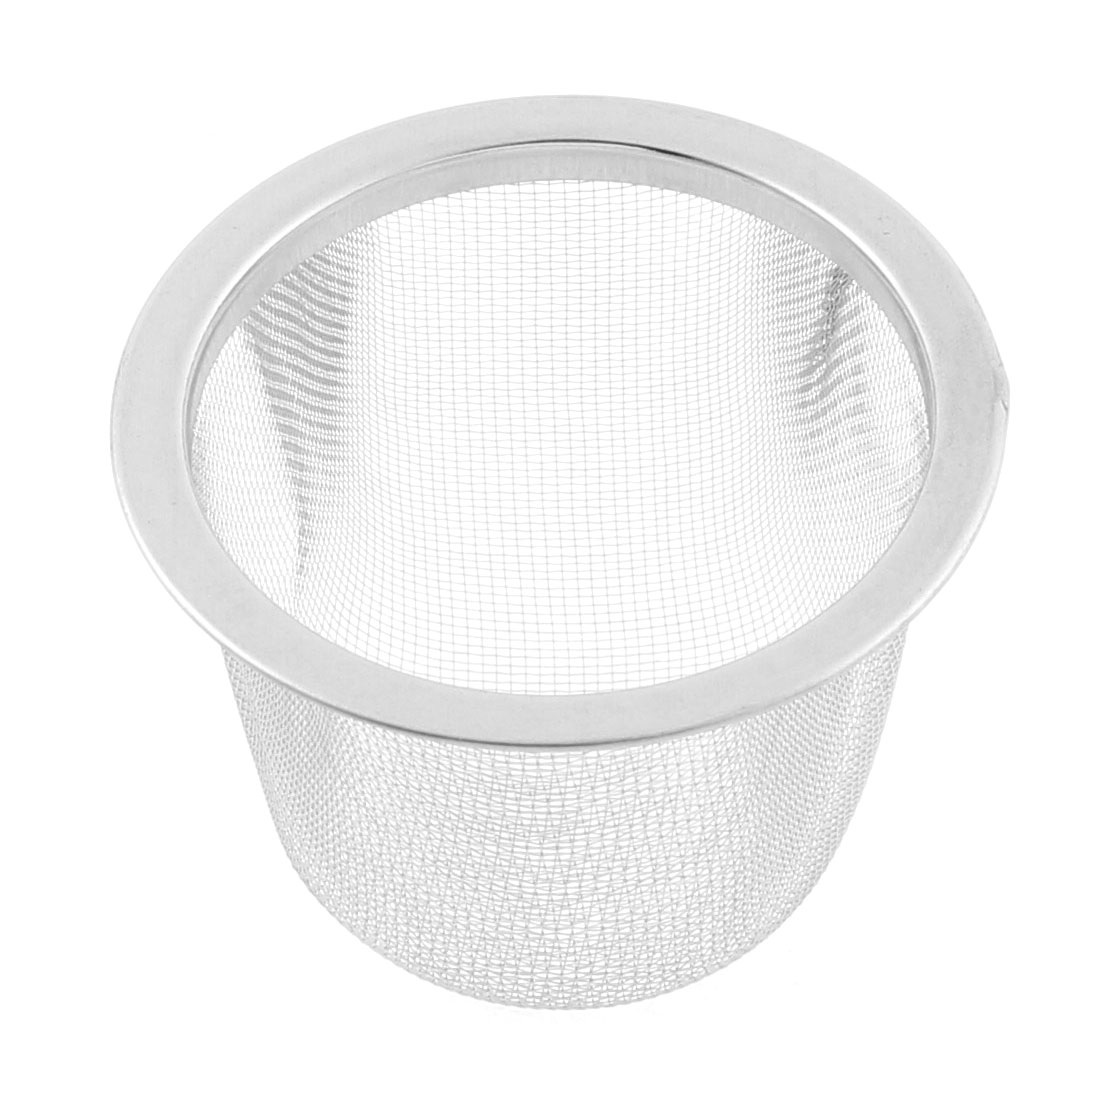 Household Stainless Steel Round Mesh Tea Infuser Strainer Basket 60mm Dia